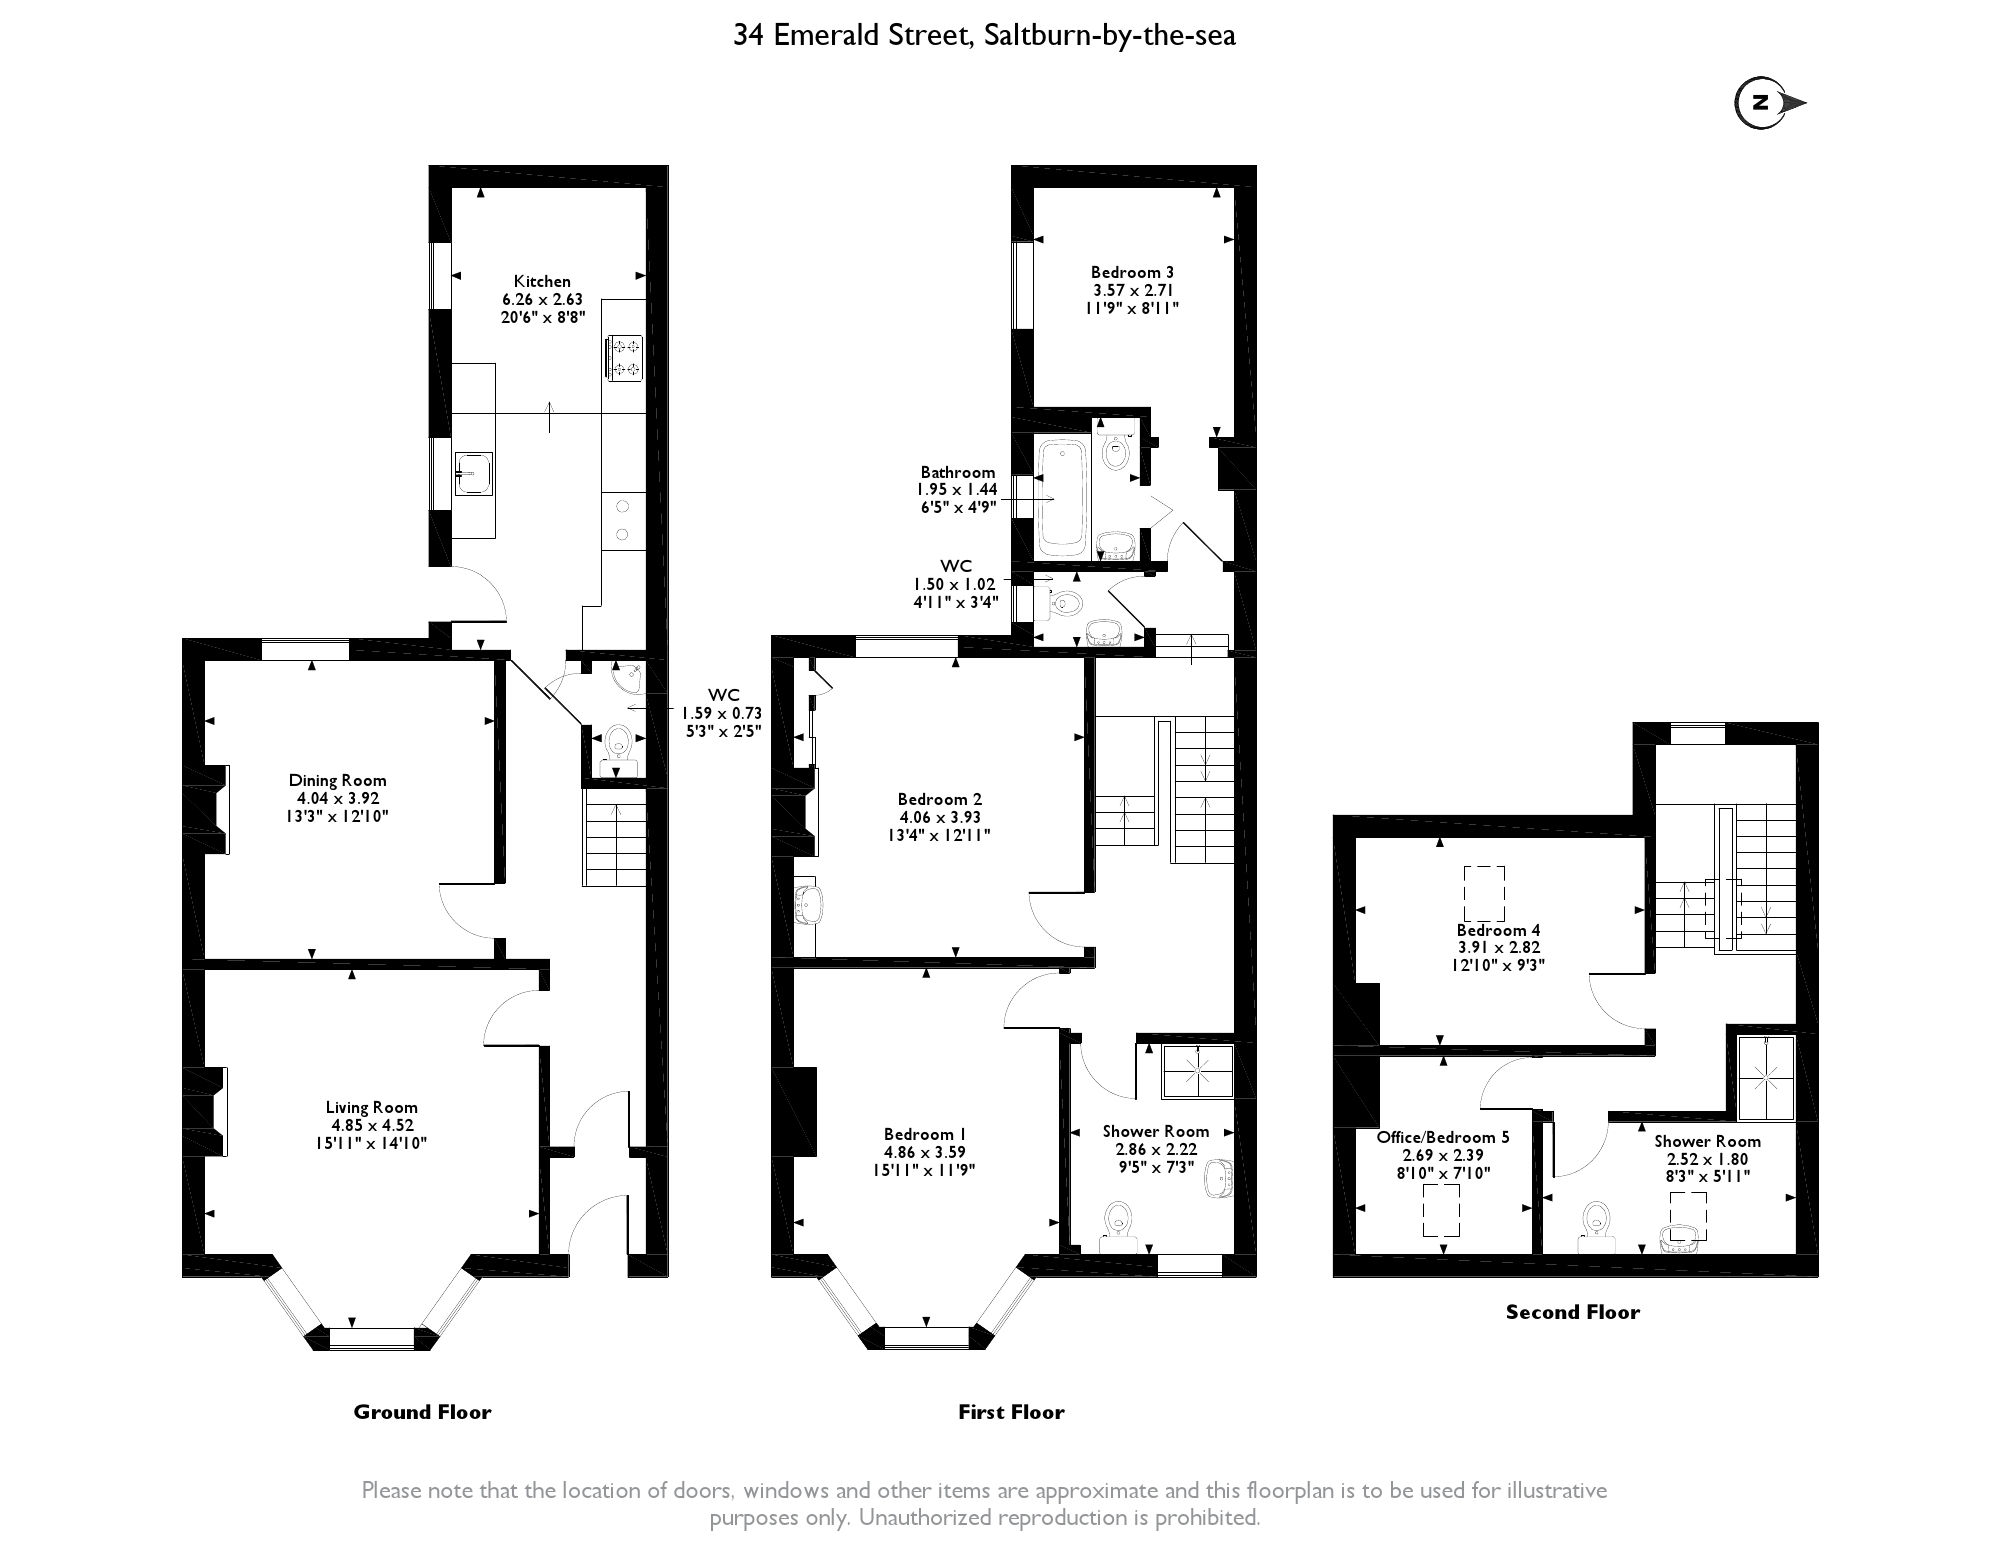 Emerald Street, Saltburn-by-the-sea, TS12 floor plan